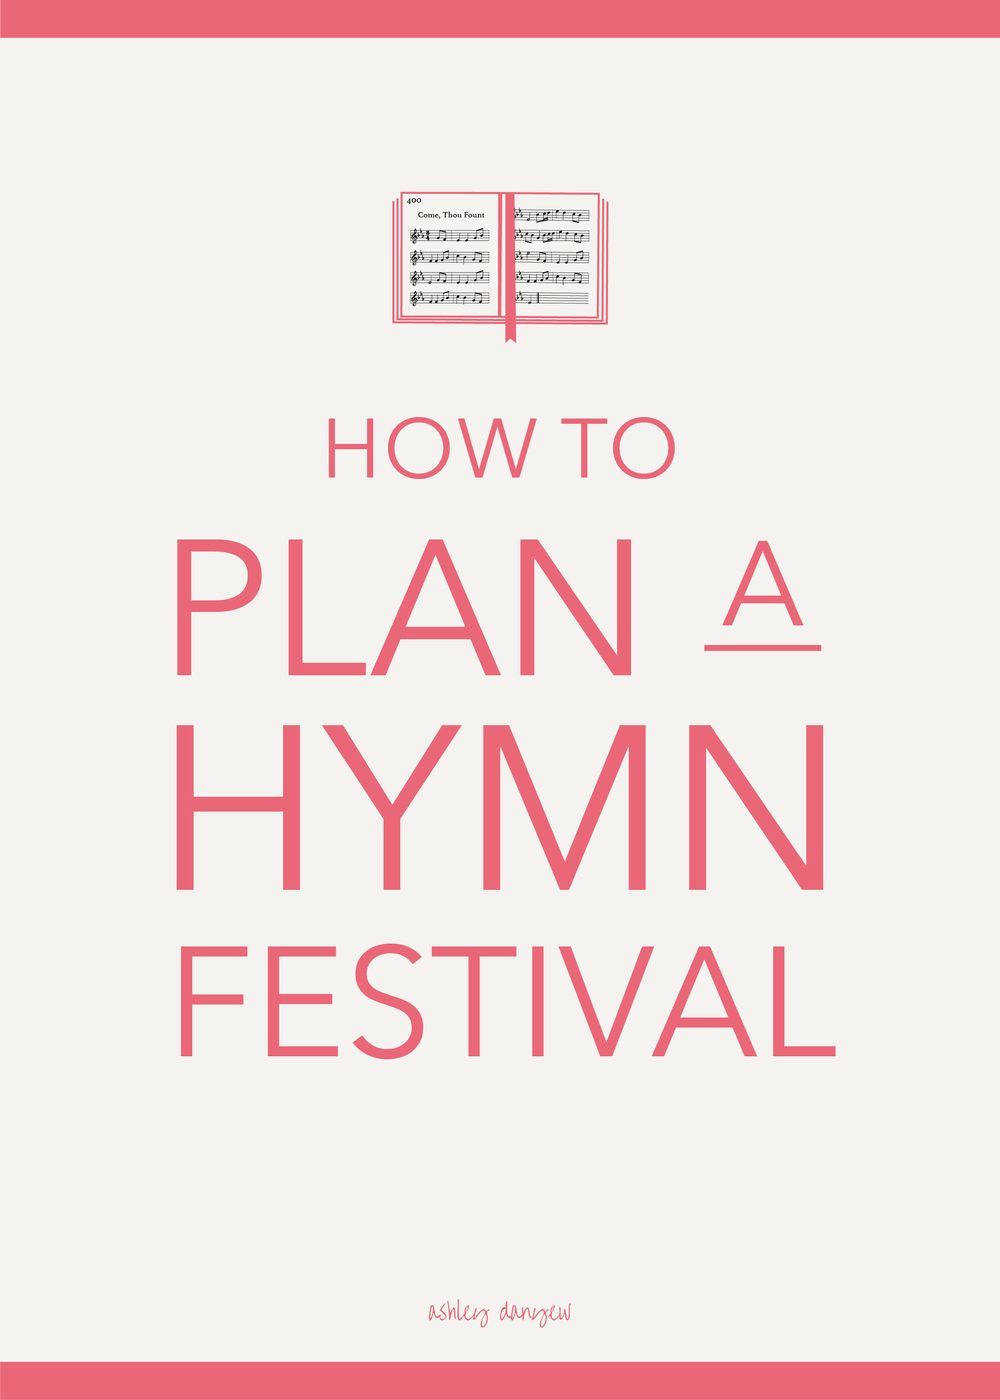 Copy of How to Plan a Hymn Festival